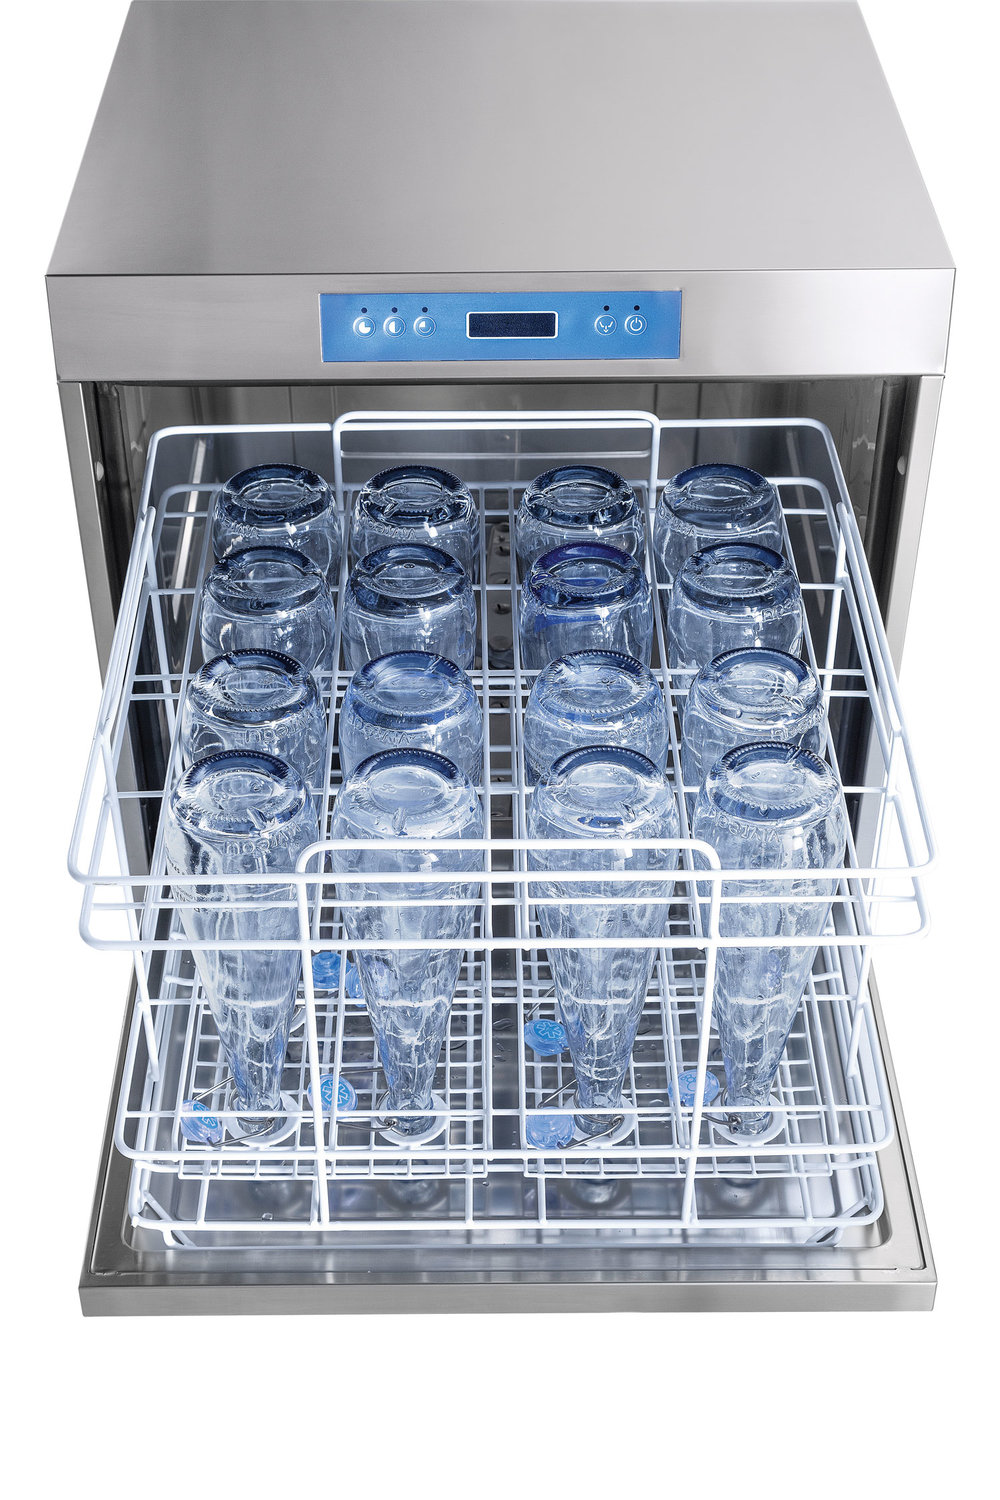 Commercial Dishwasher Rack